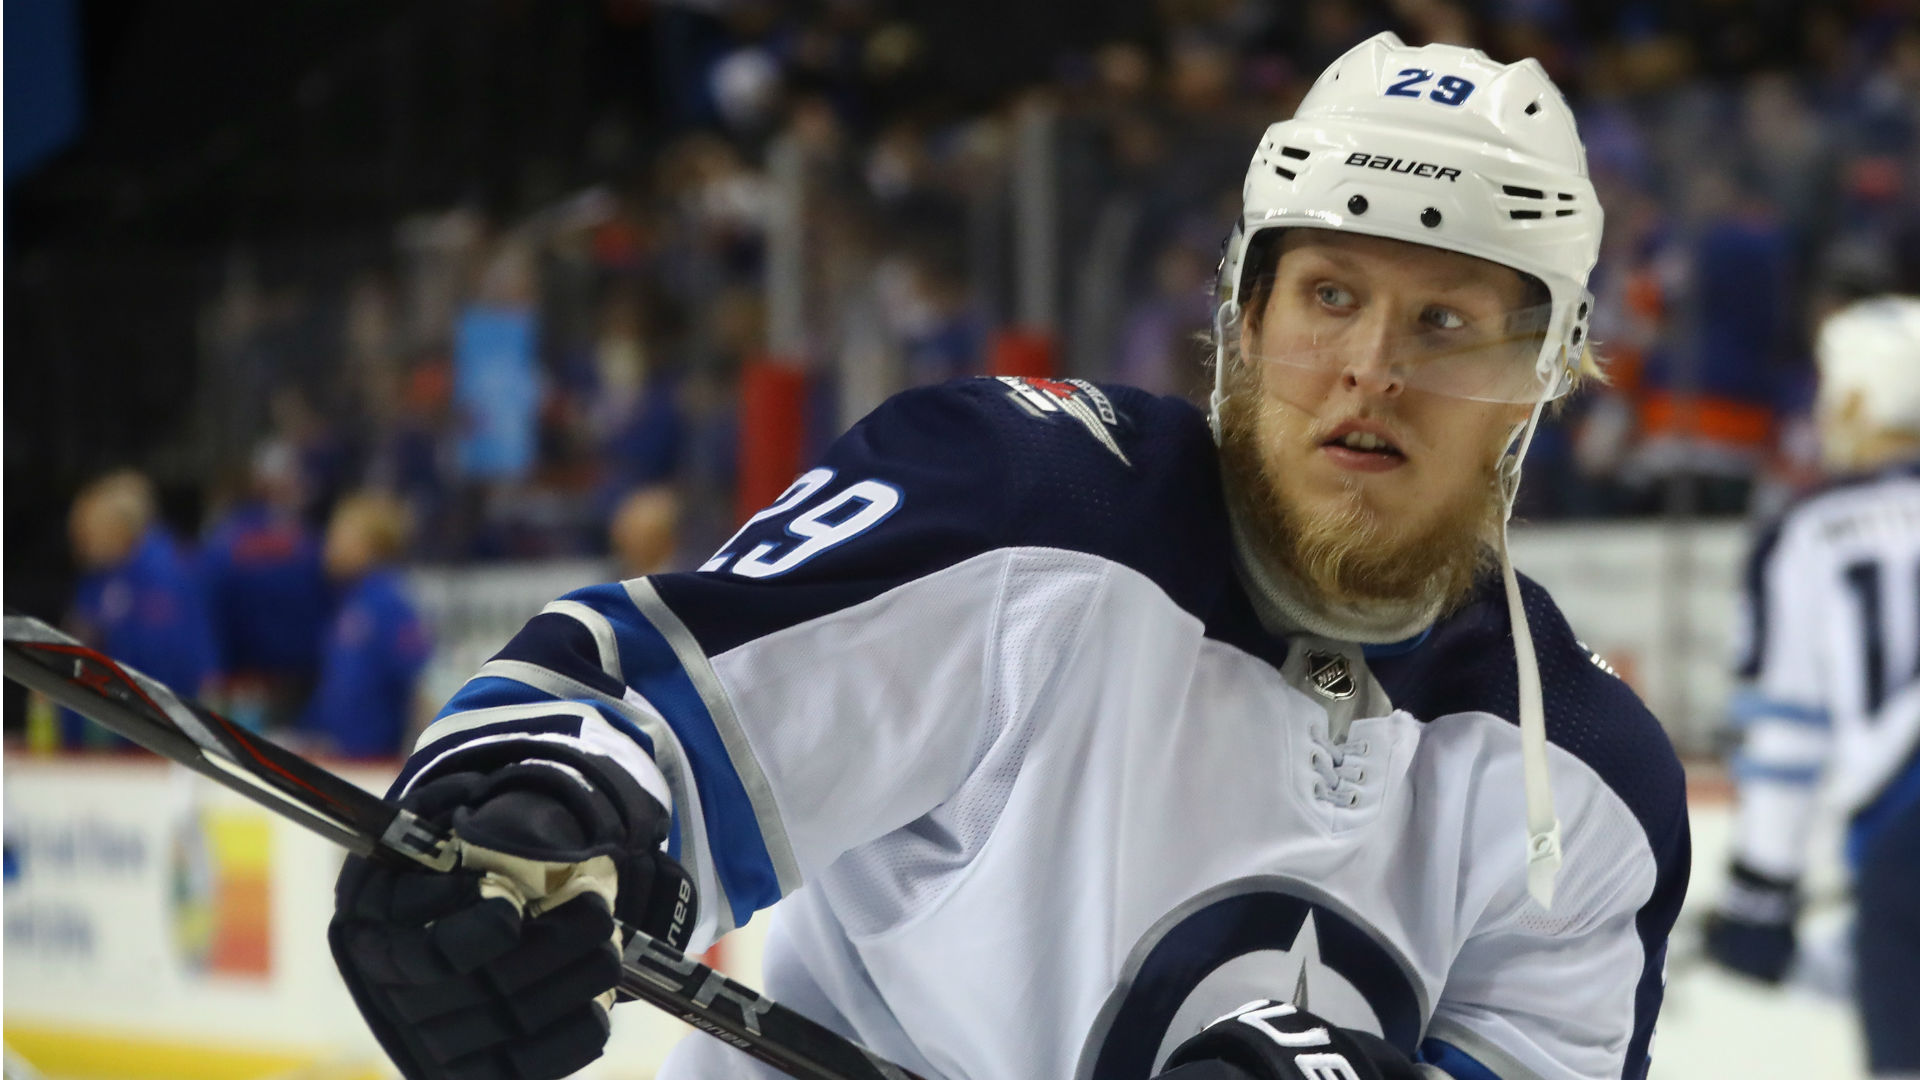 Days after saying he'd like to notch 50, Patrik Laine scores first goal of season